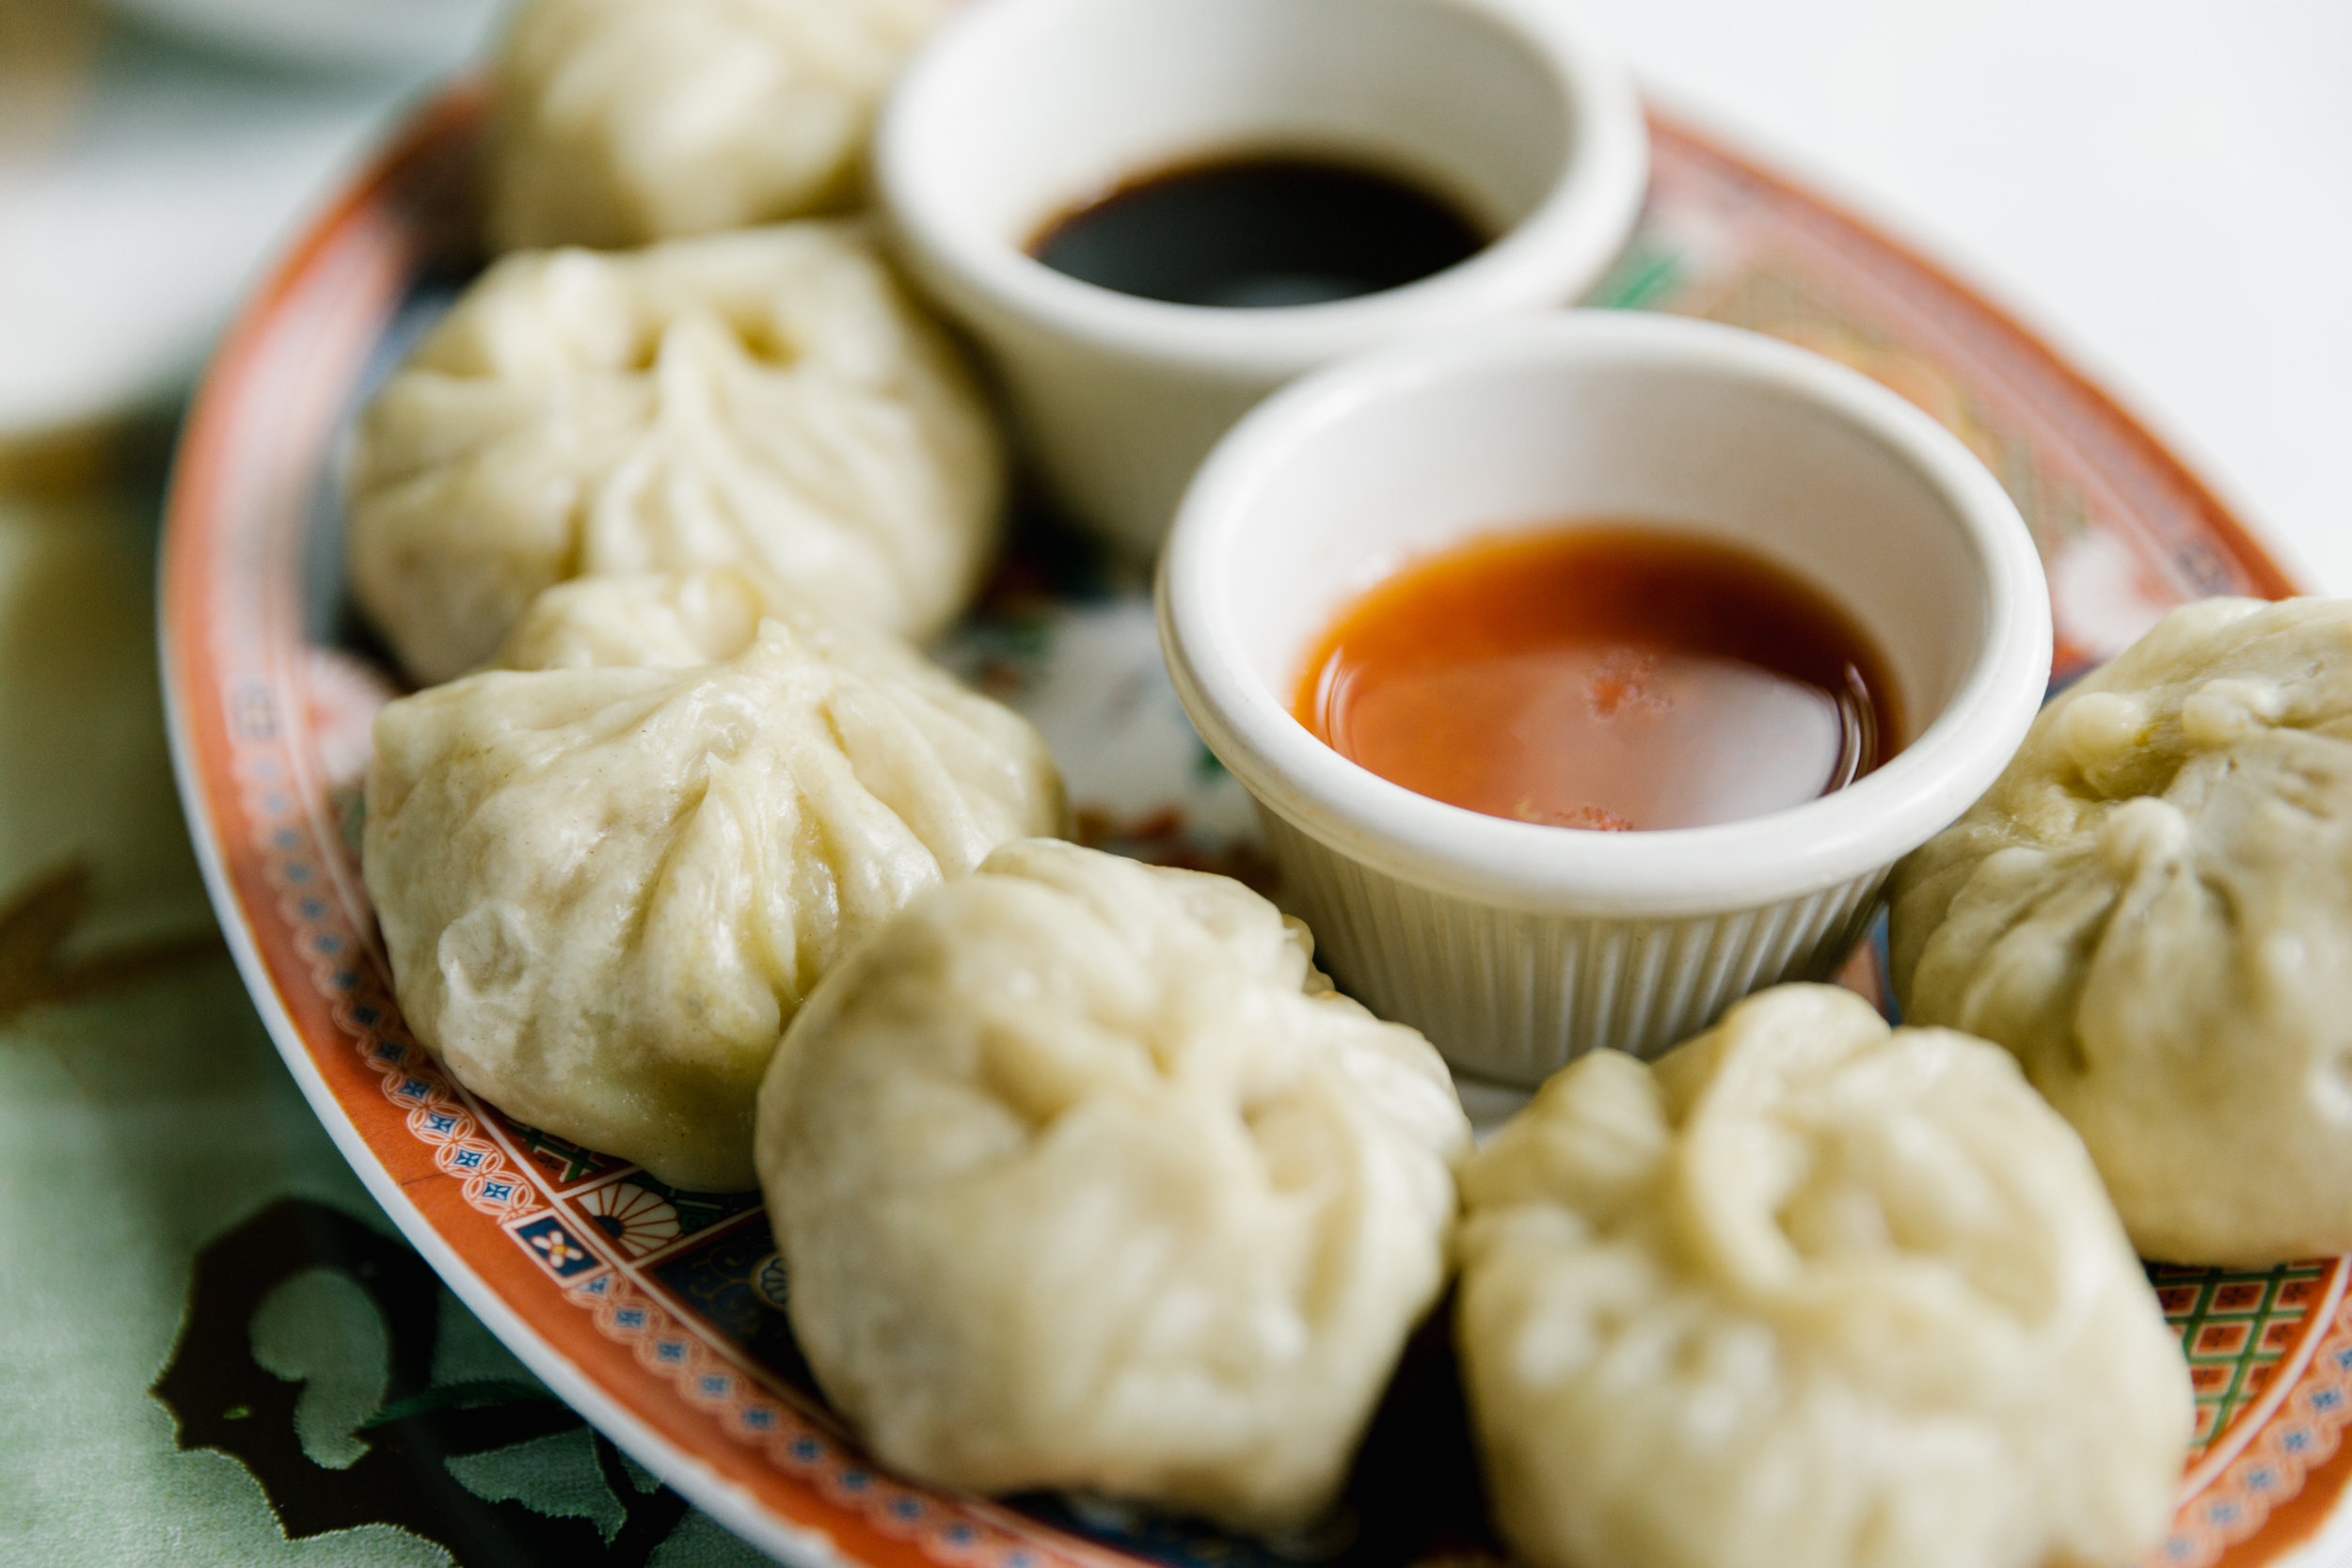 Dumpling midwest editorial food photographer